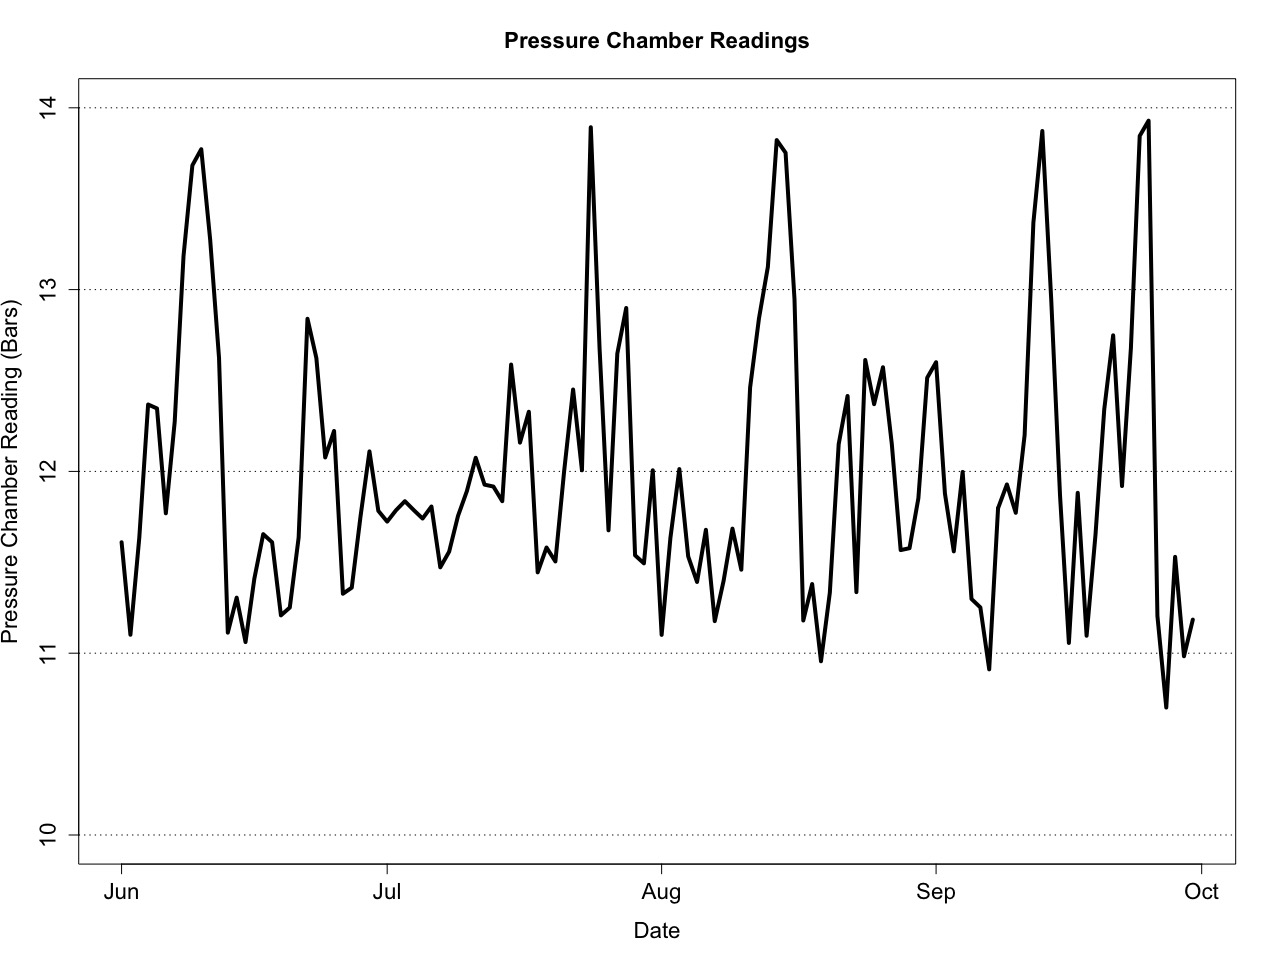 Figure 4: Pressure Chamber Readings